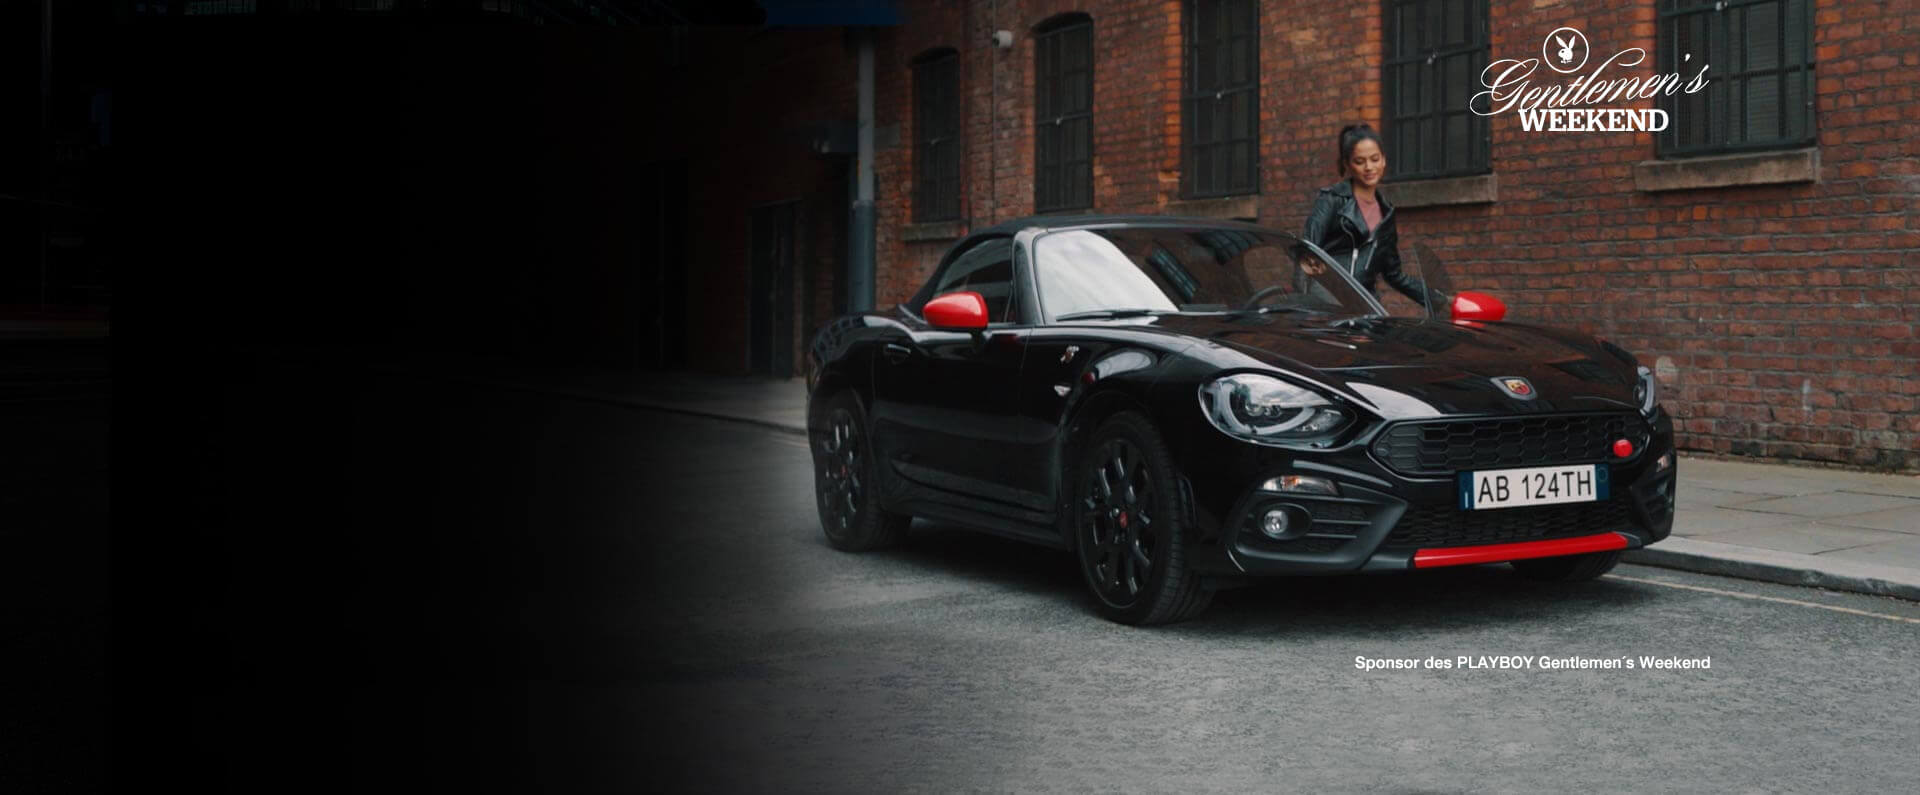 abath fiat 124 spider turismo leasing f r 399 euro im monat brutto all inclusive. Black Bedroom Furniture Sets. Home Design Ideas